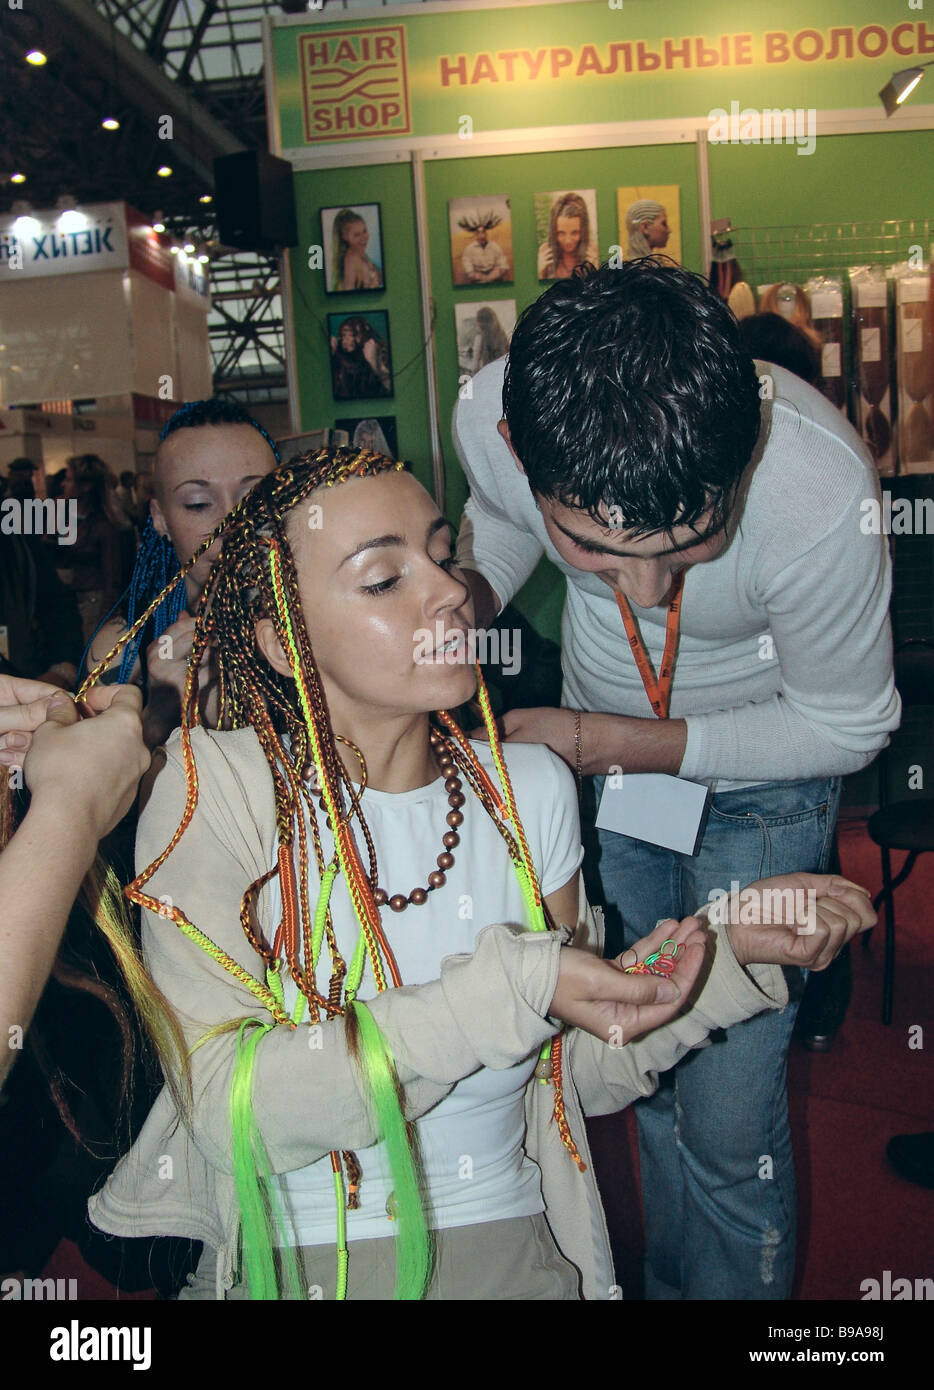 The 31st world championship of hairdressing art and decorative cosmetics is on in Moscow for the first time - Stock Image